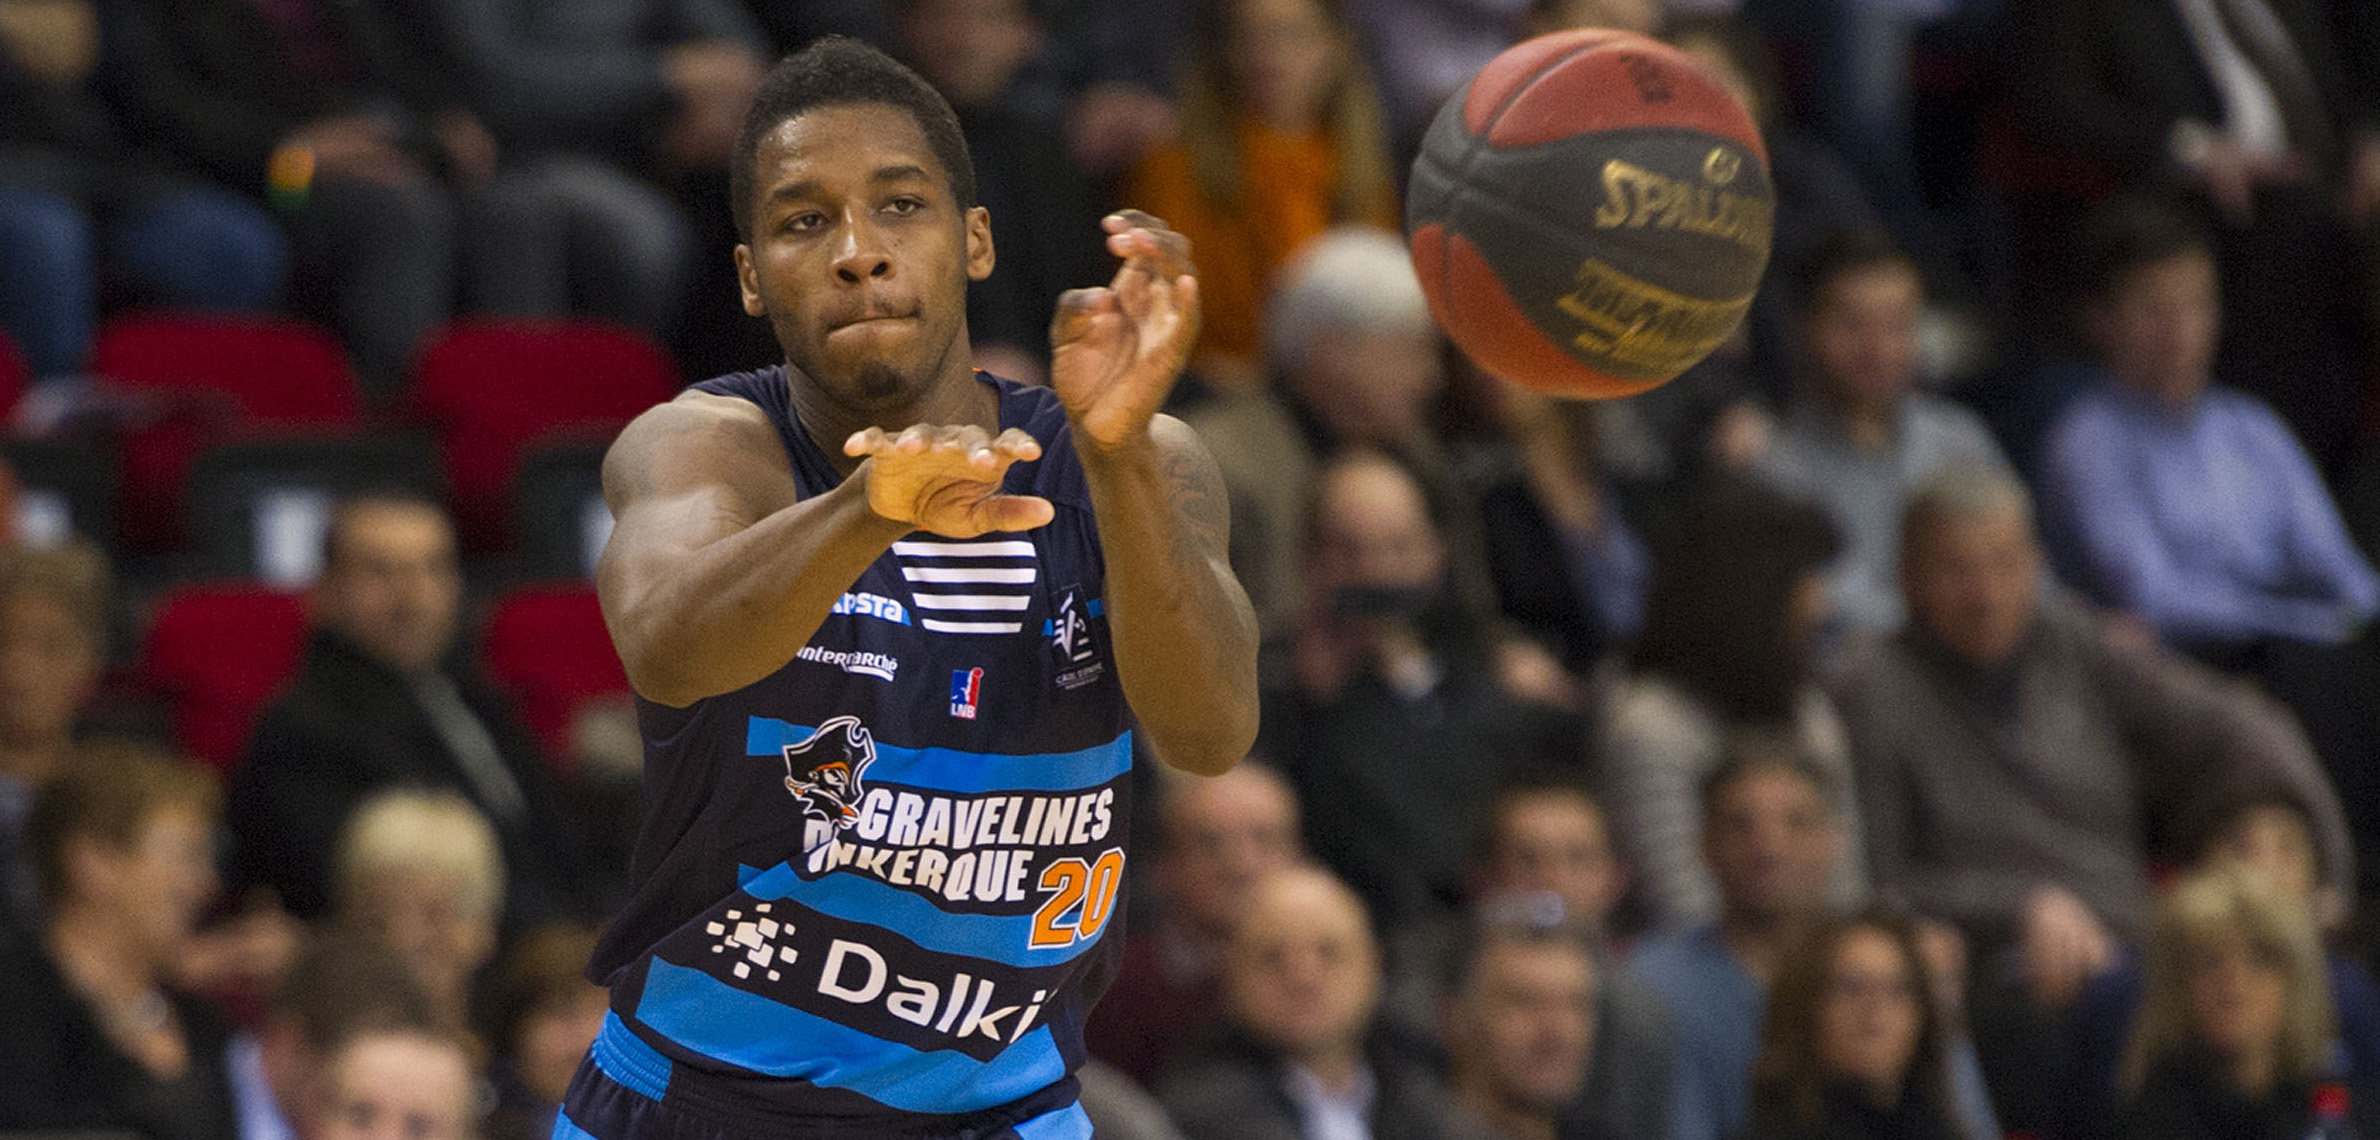 BASKET : Boulogne-sur-Mer vs Gravelines Dunkerque en direct live streaming